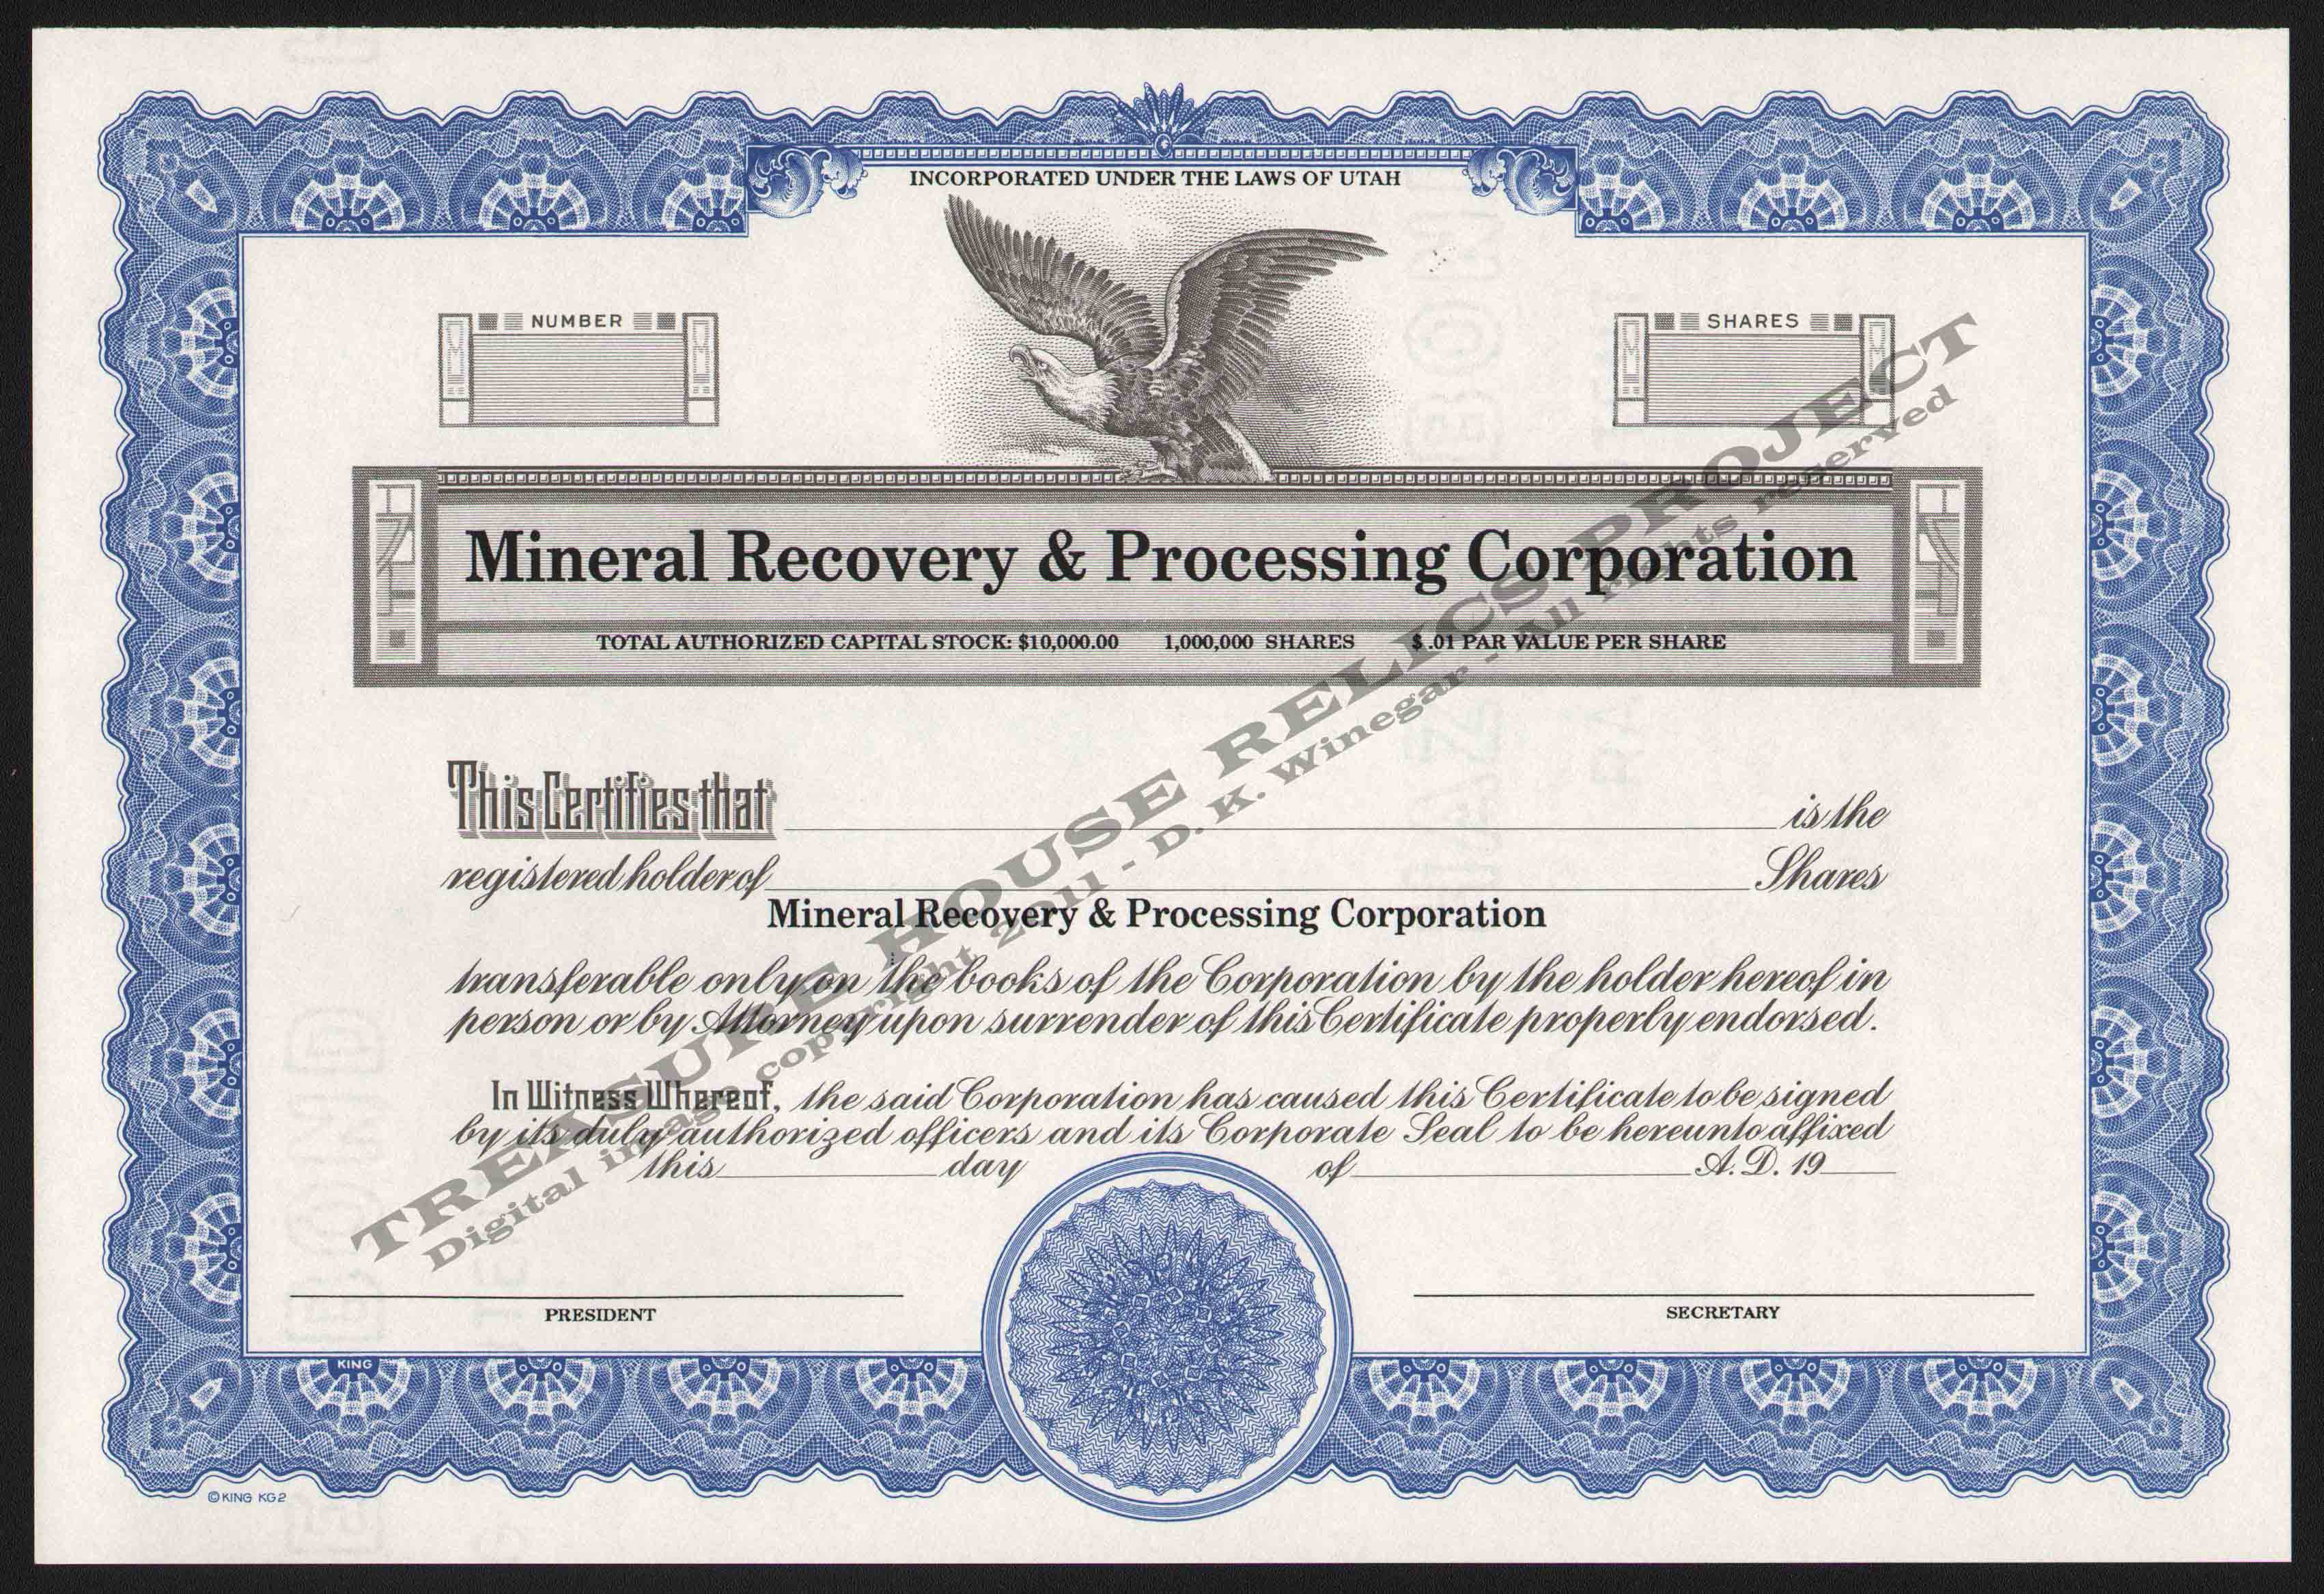 MINERAL_RECOVERY_PROCESSING_NNNN_300_EMBOSS.jpg